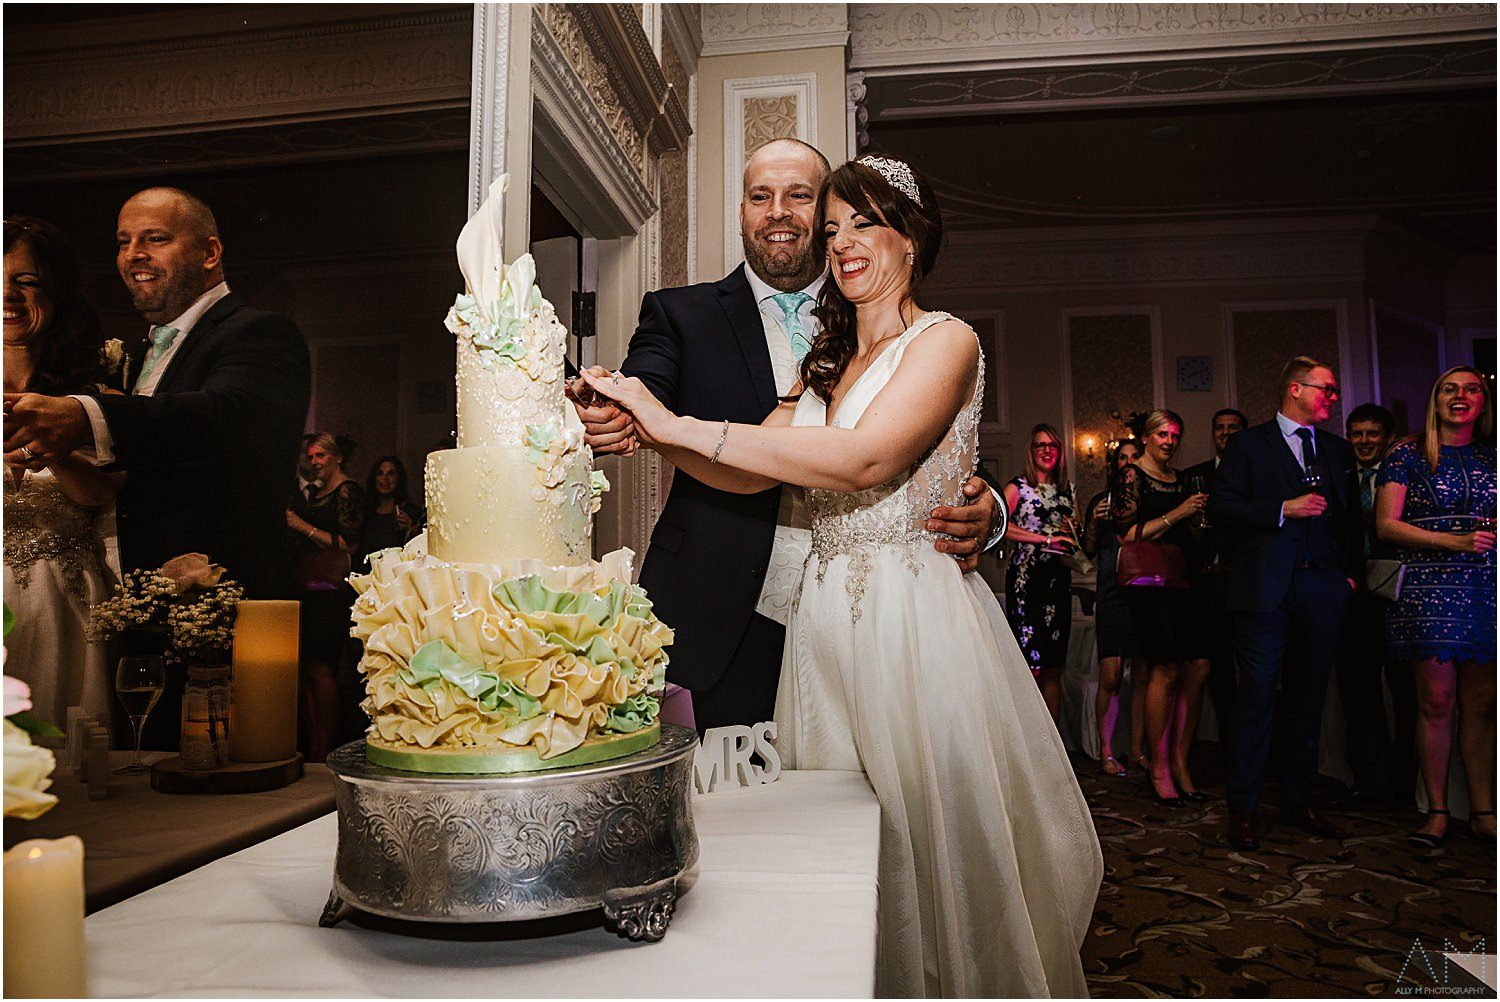 Cake cutting at Midland Hotel